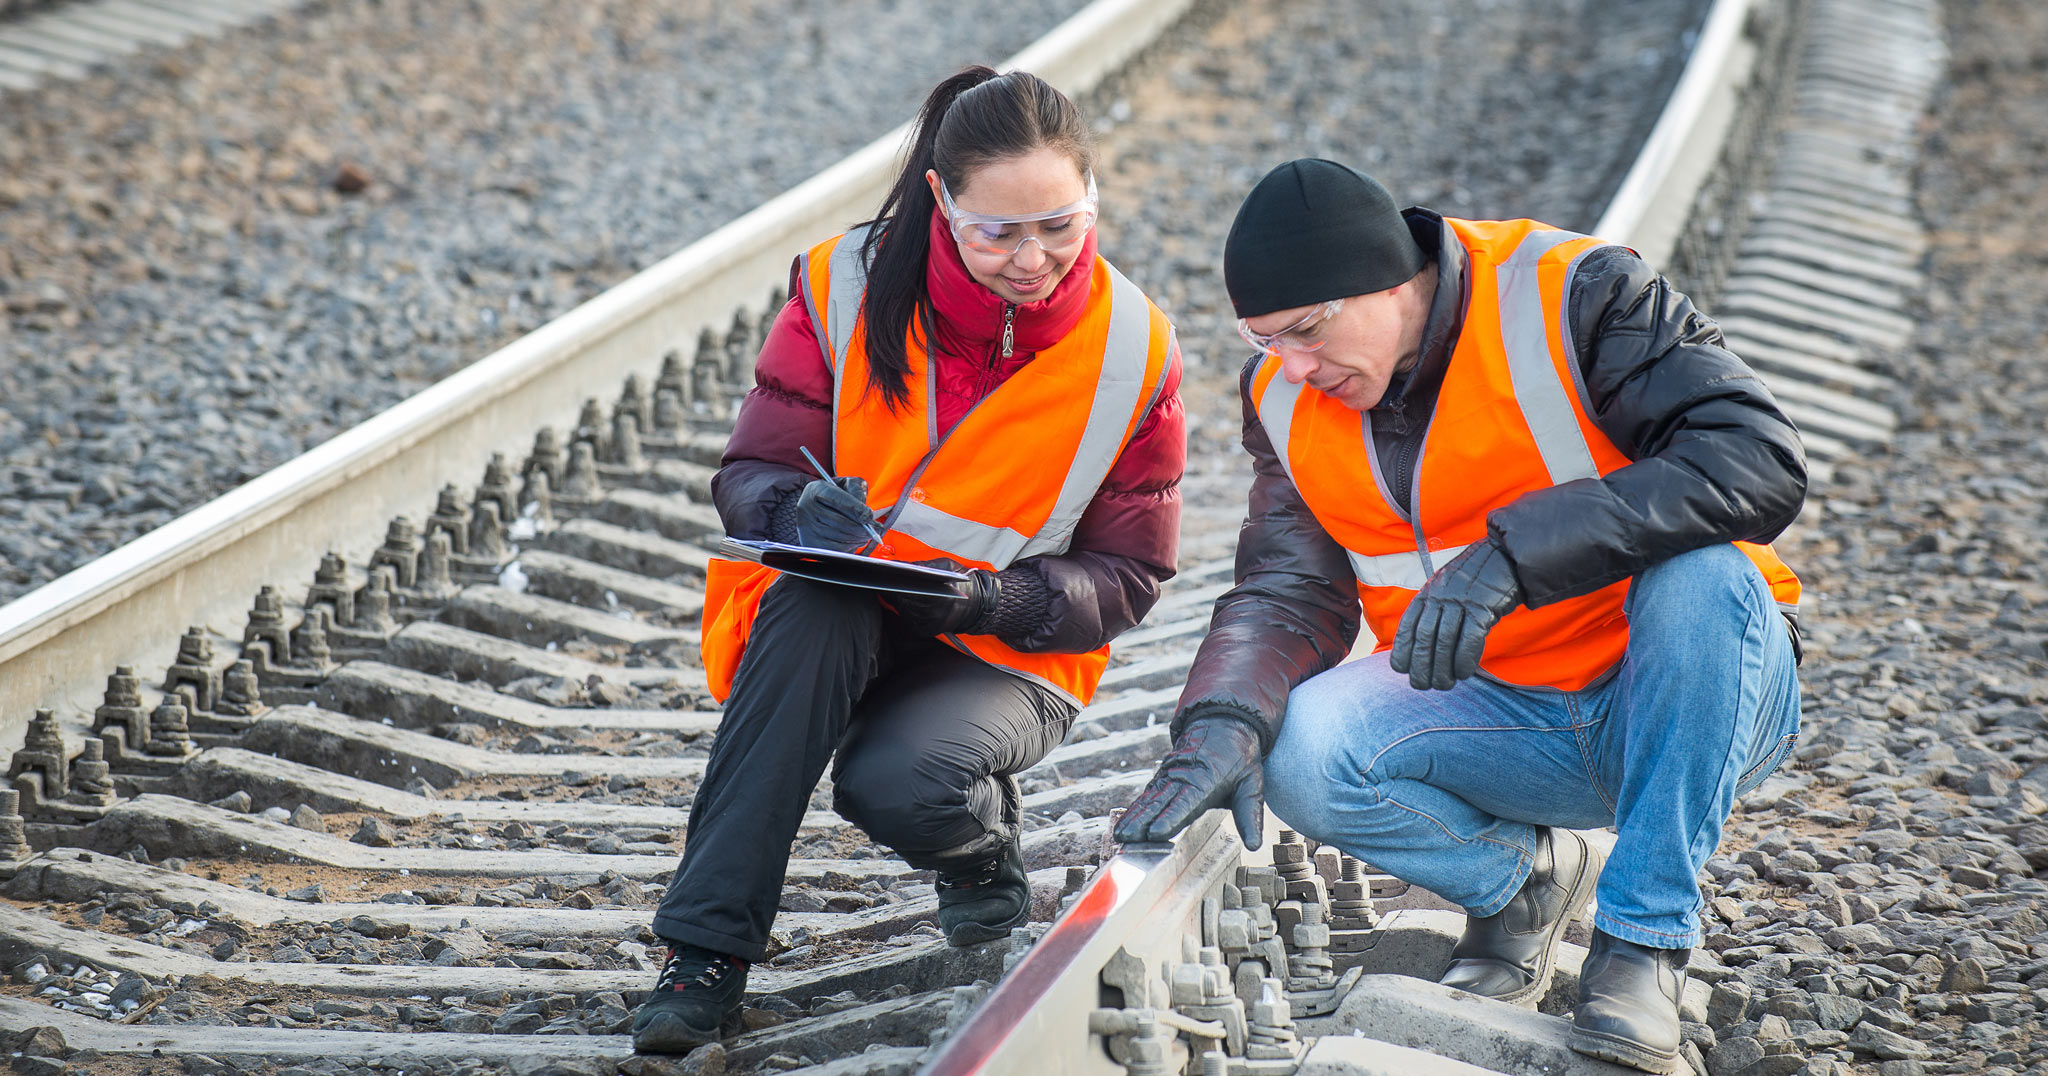 Workers inspecting railway tracks